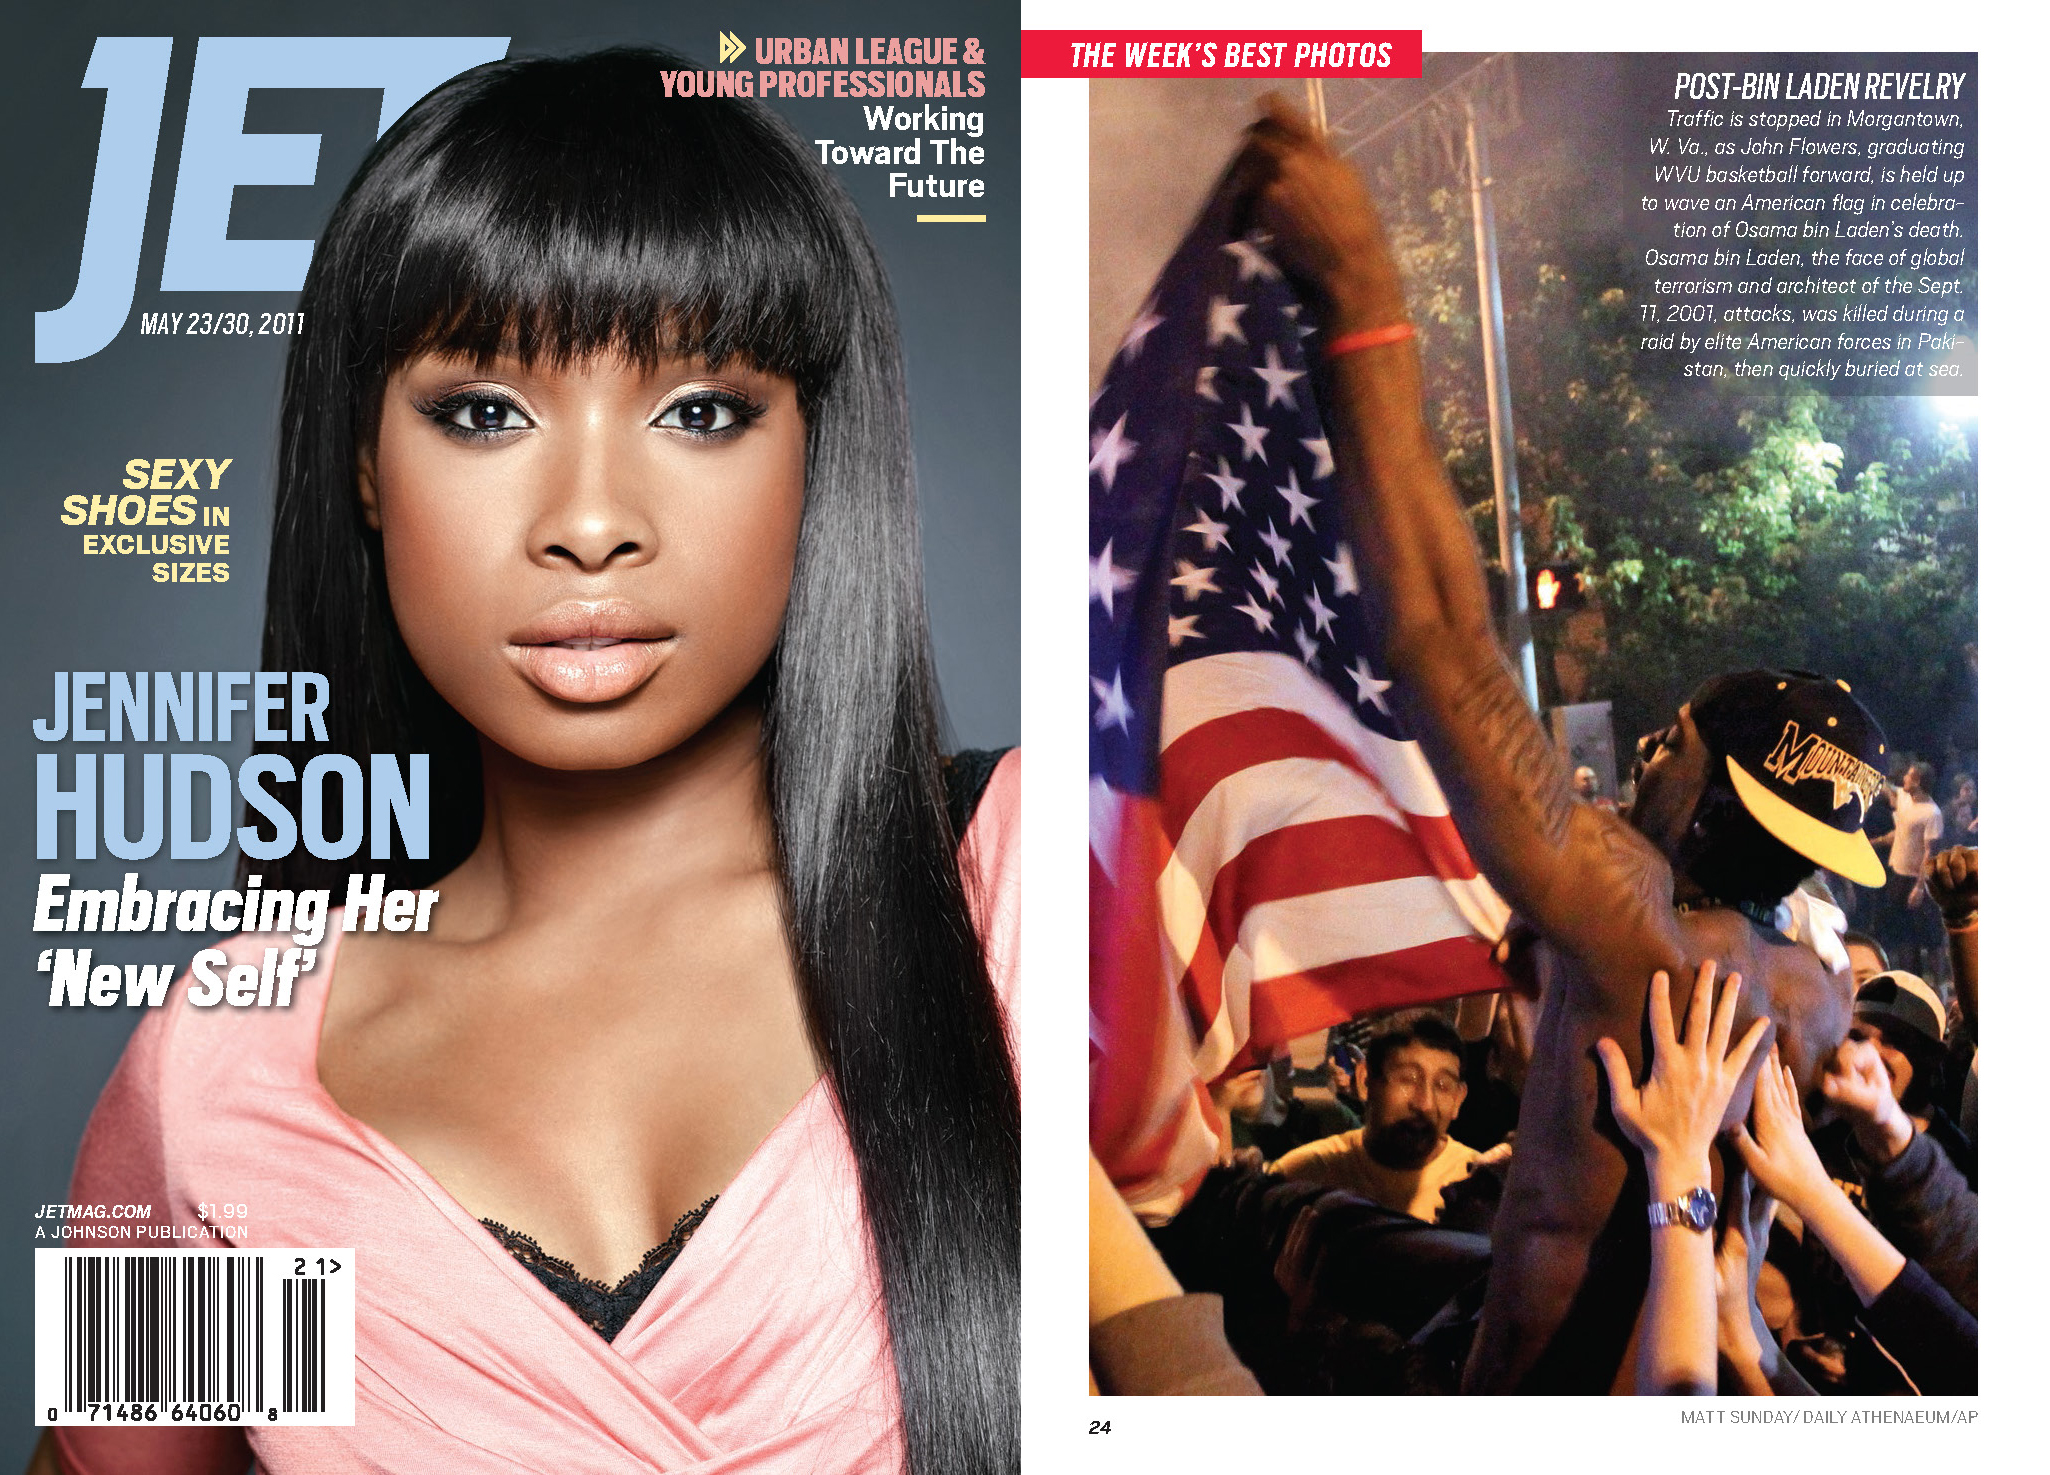 Cover and photo in jet.jpg